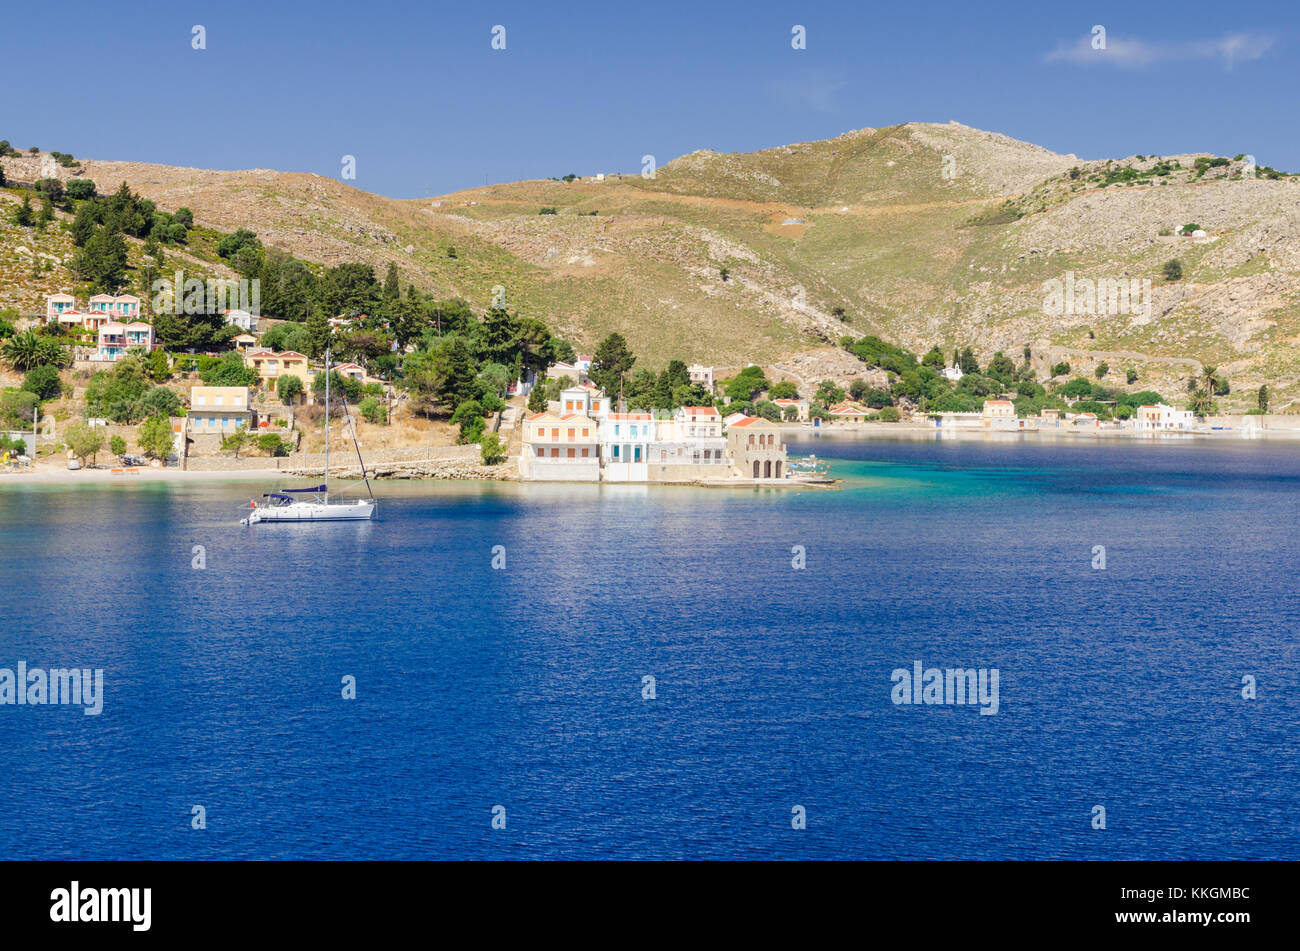 Looking towards the small village of Emporios on Symi Island, Dodecanese, Greece - Stock Image